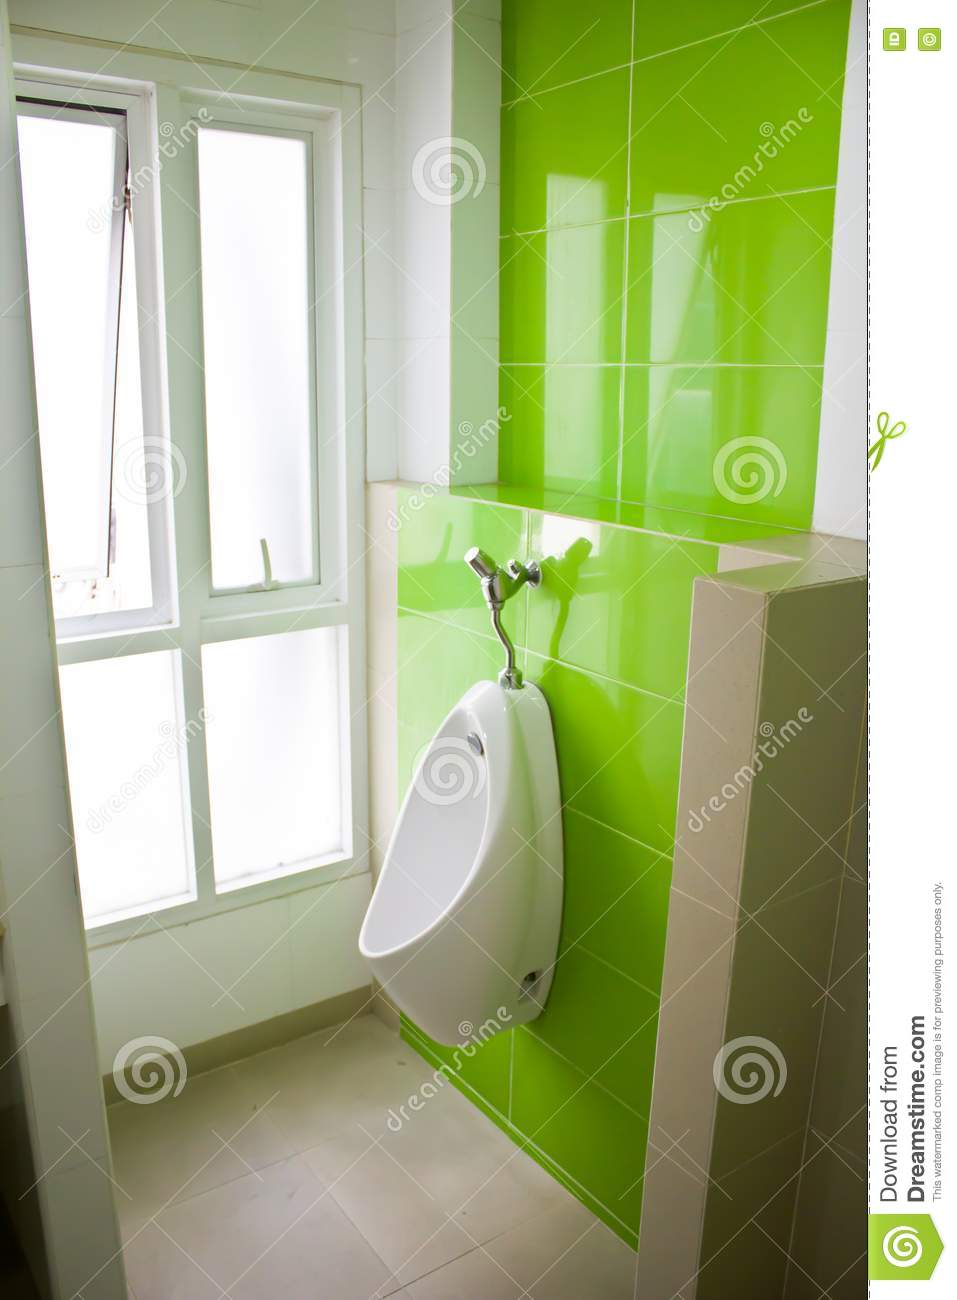 Urinal In The Bathroom Royalty Free Stock Image Image 24899726